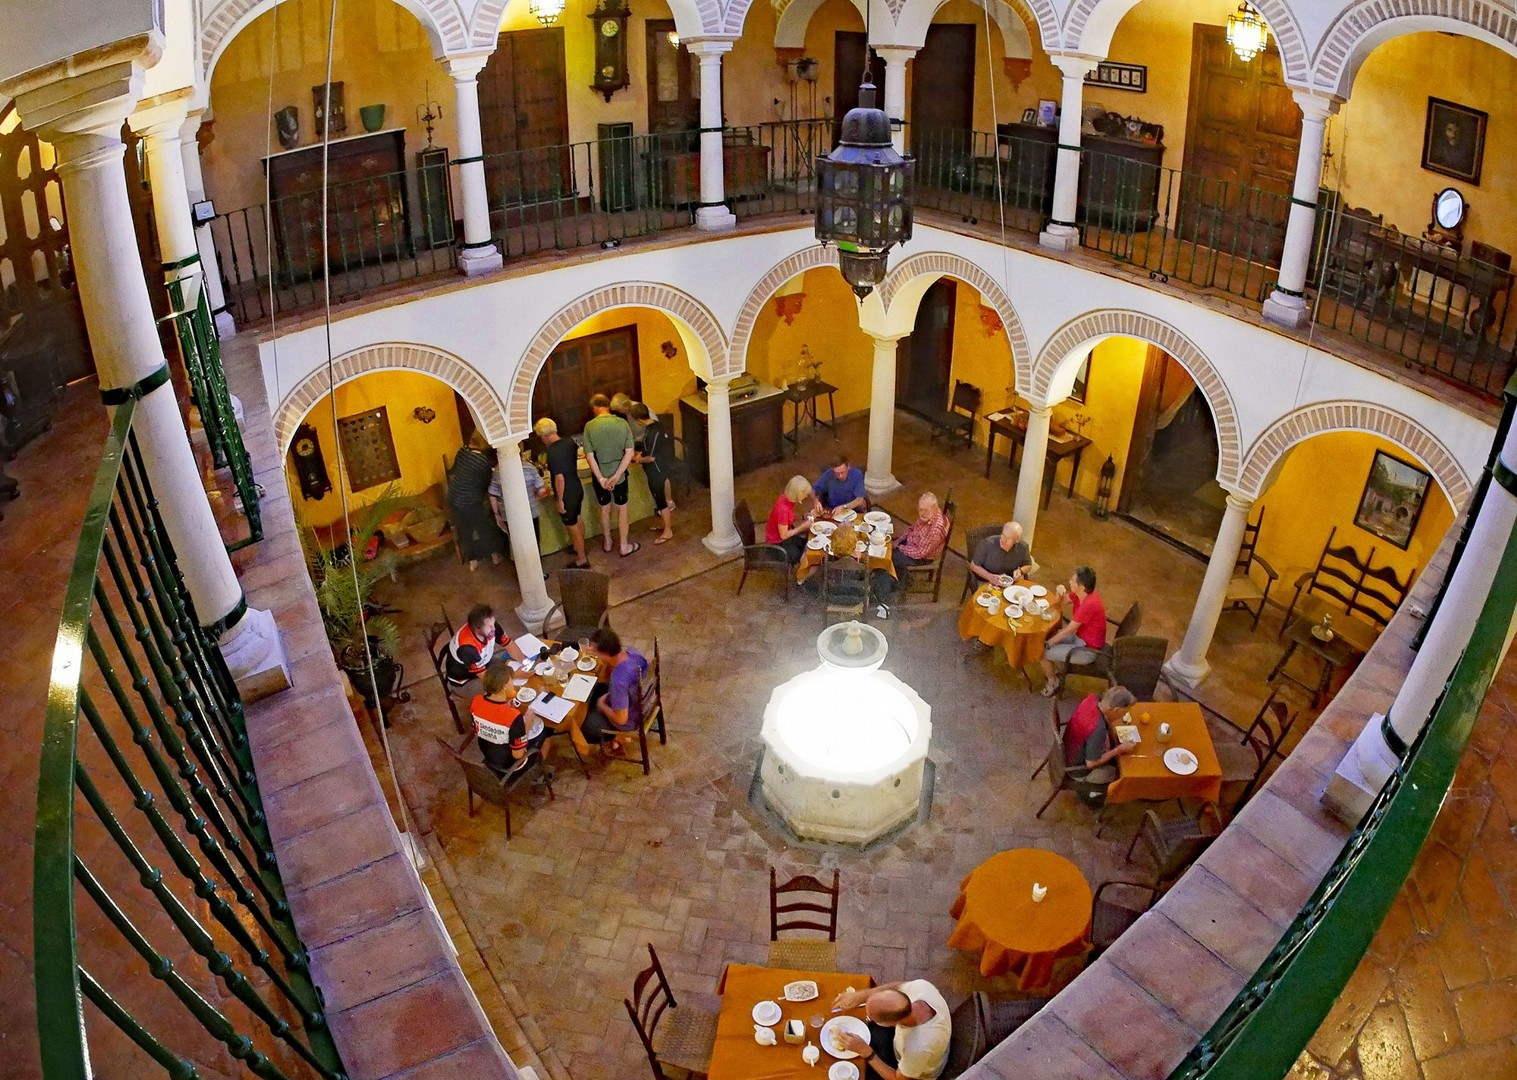 leisure-cycling-holiday-in-spain-granada-to-seville.jpg - Southern Spain - Granada to Seville - Guided Leisure Cycling Holiday - Leisure Cycling